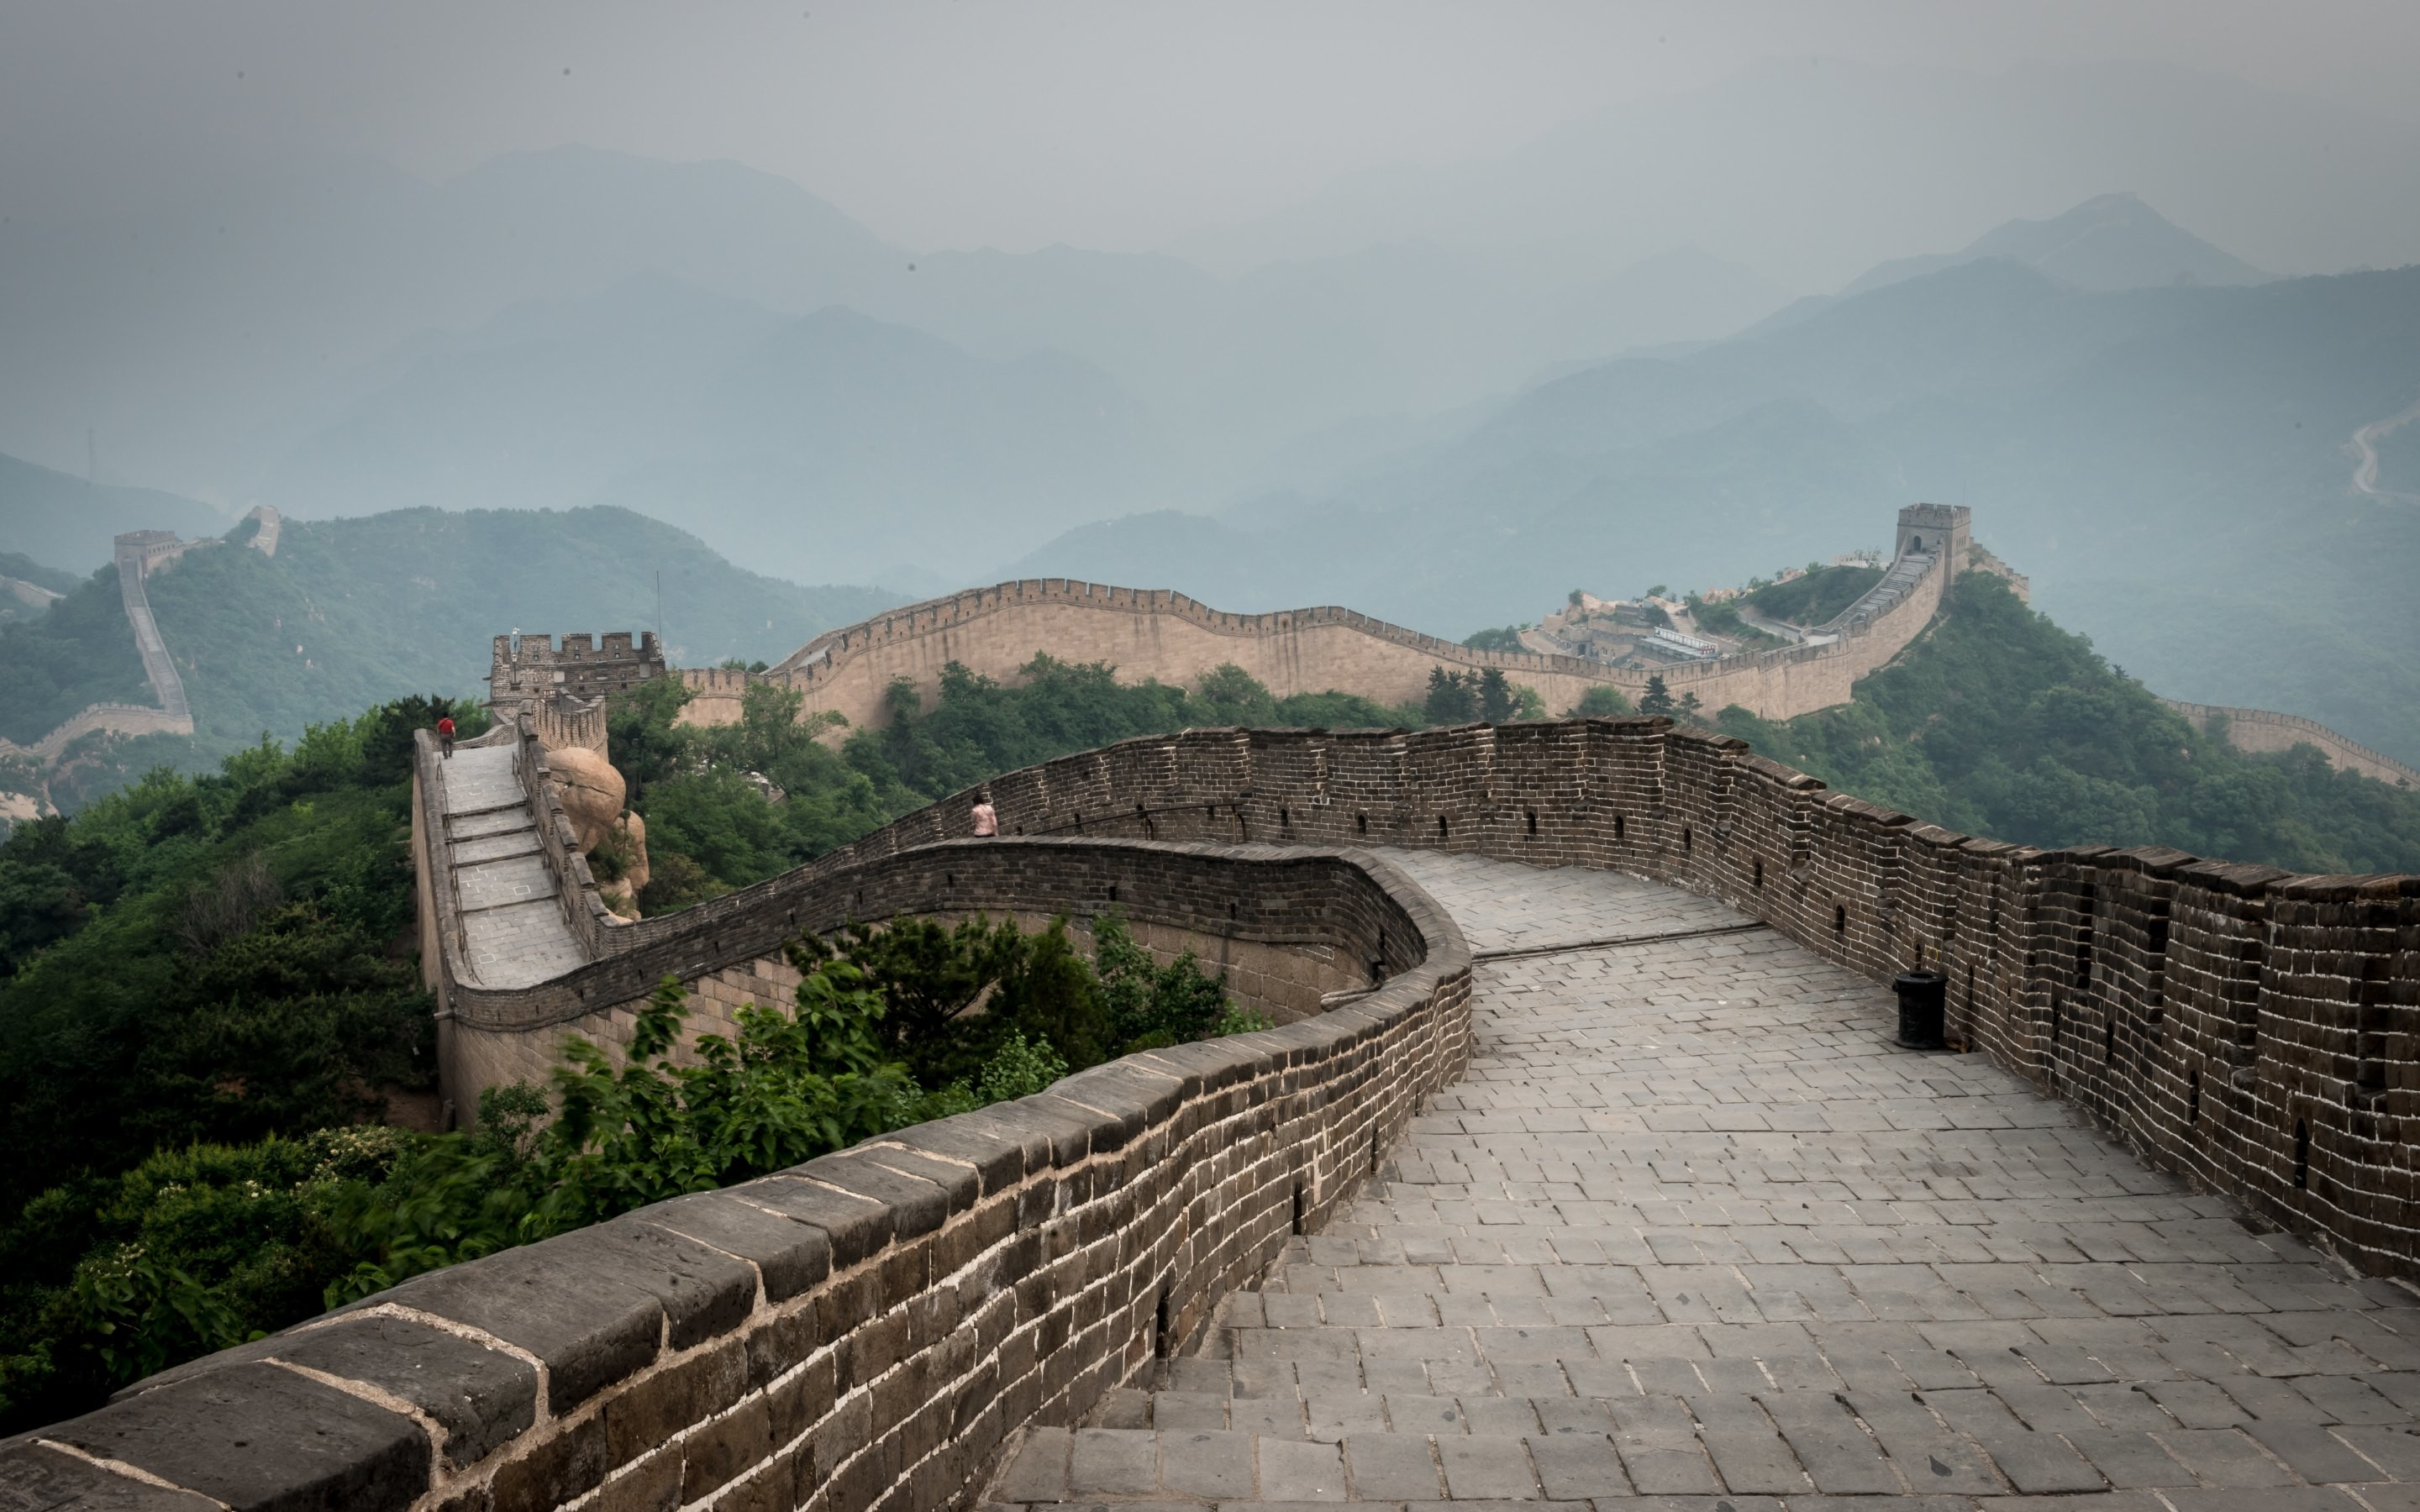 The Great Wall of China Wallpaper 51 images 2880x1800